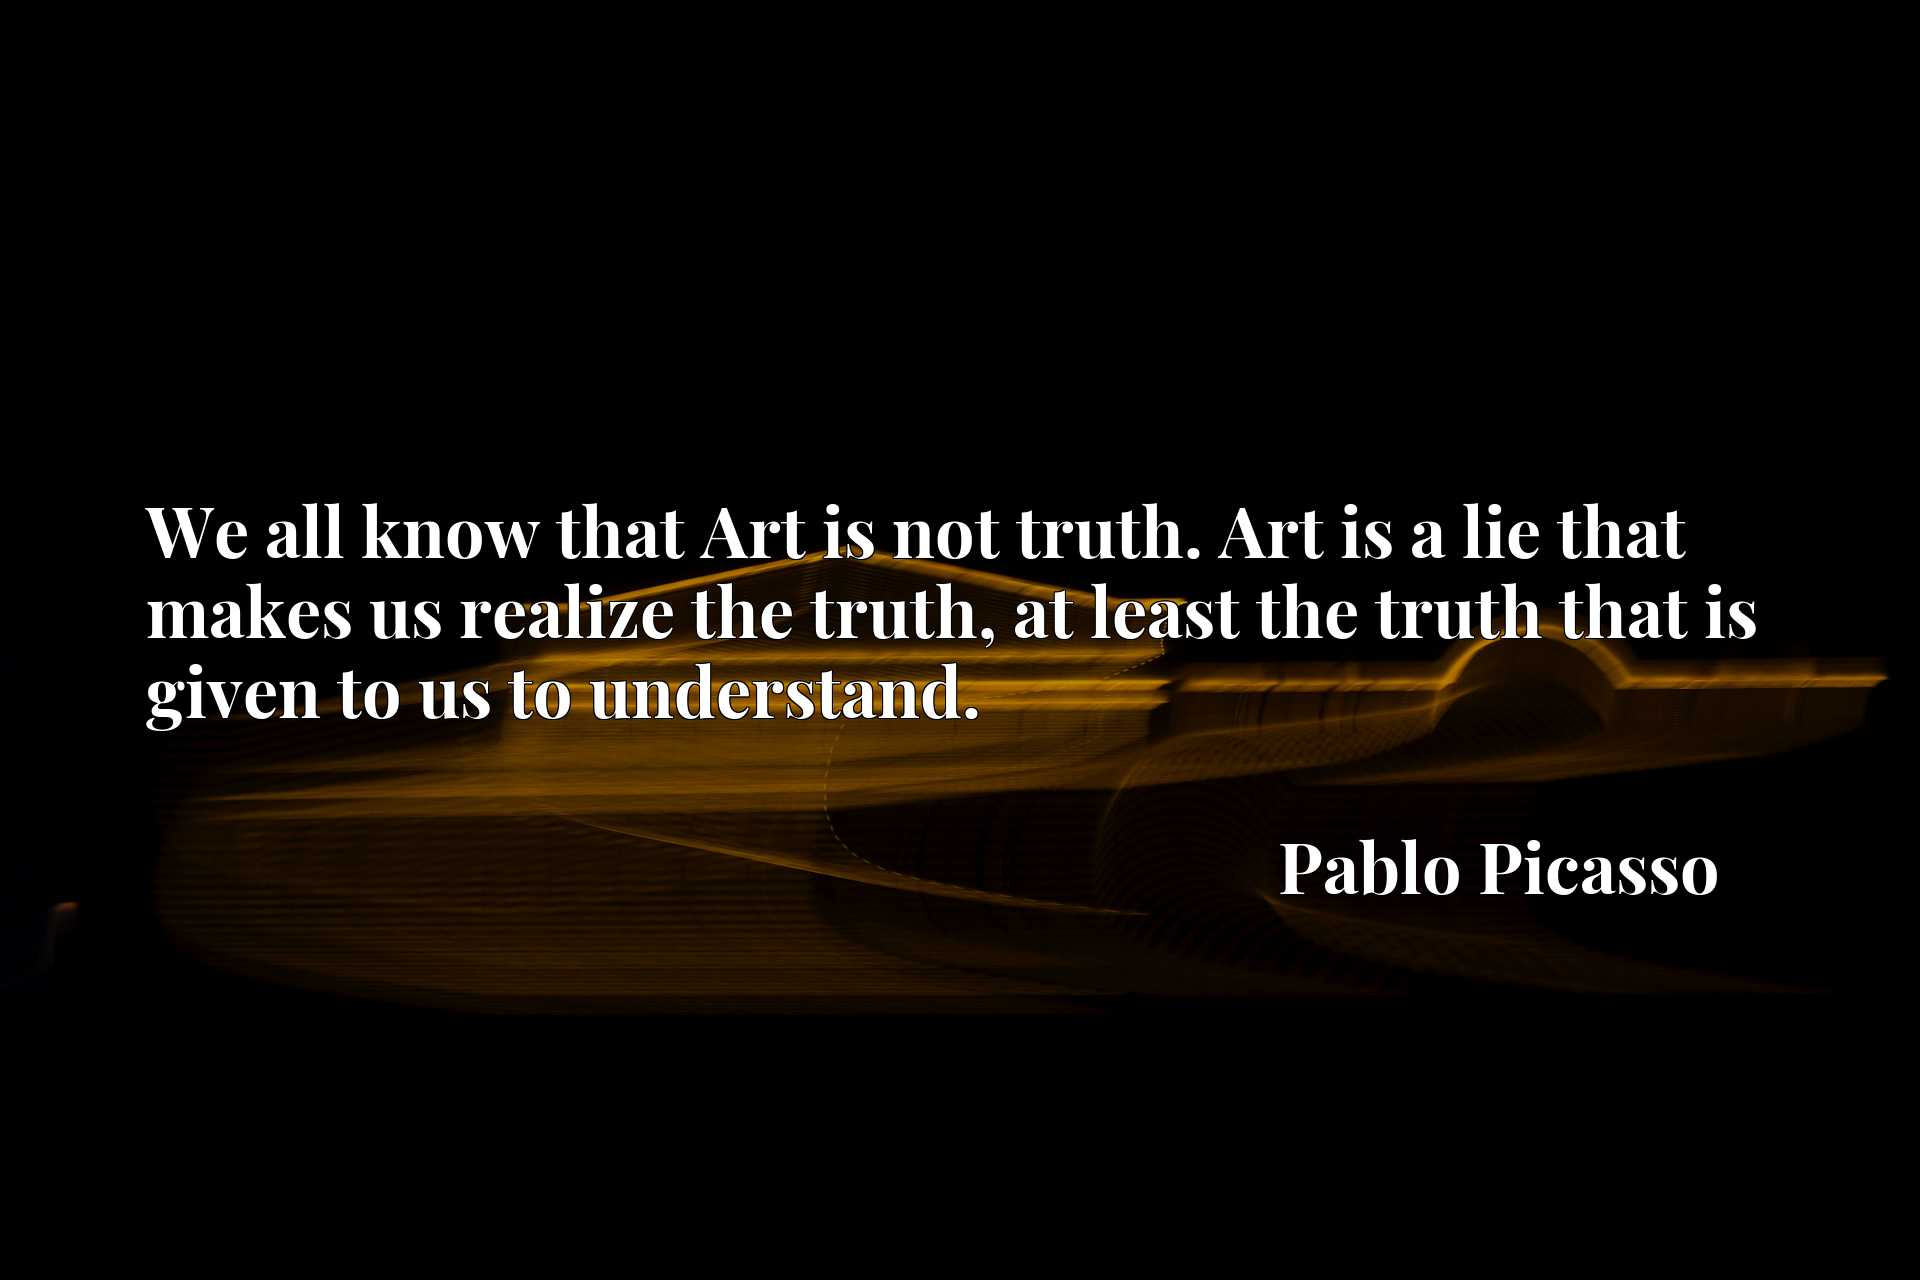 We all know that Art is not truth. Art is a lie that makes us realize the truth, at least the truth that is given to us to understand.